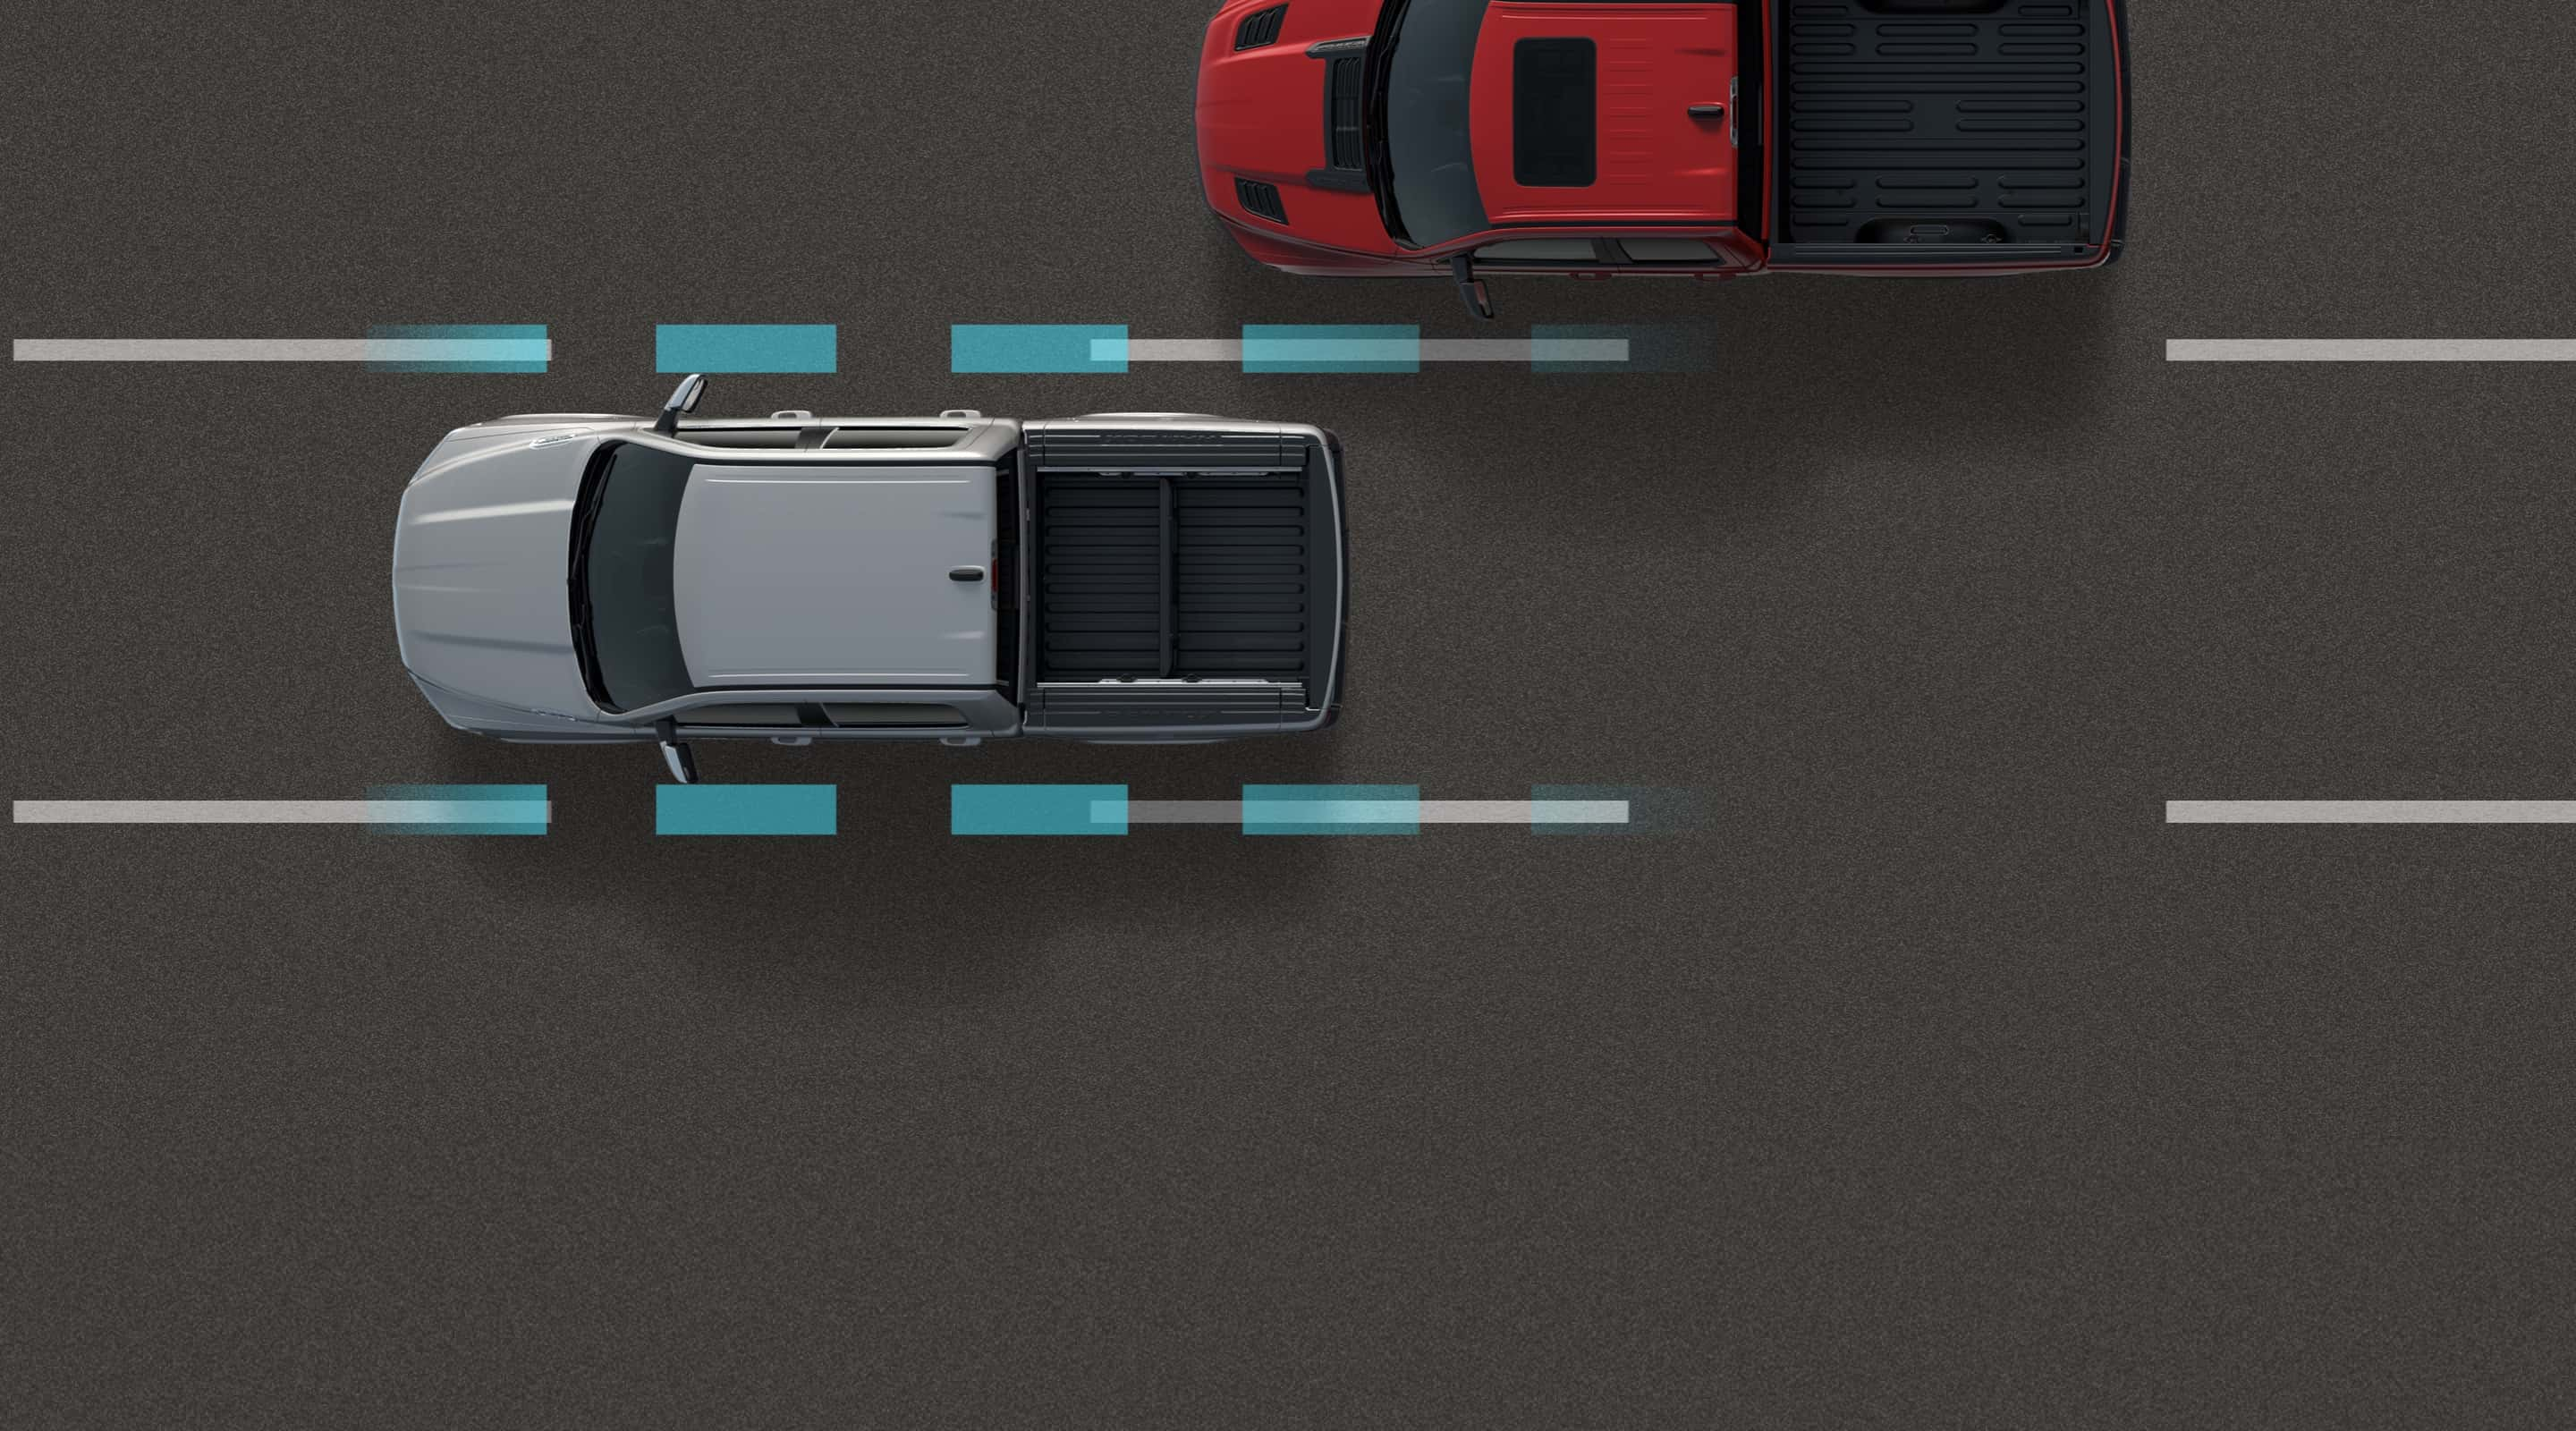 An illustration of the sensors on the 2020 Ram 3500 superimposed on the lane markers on the road.